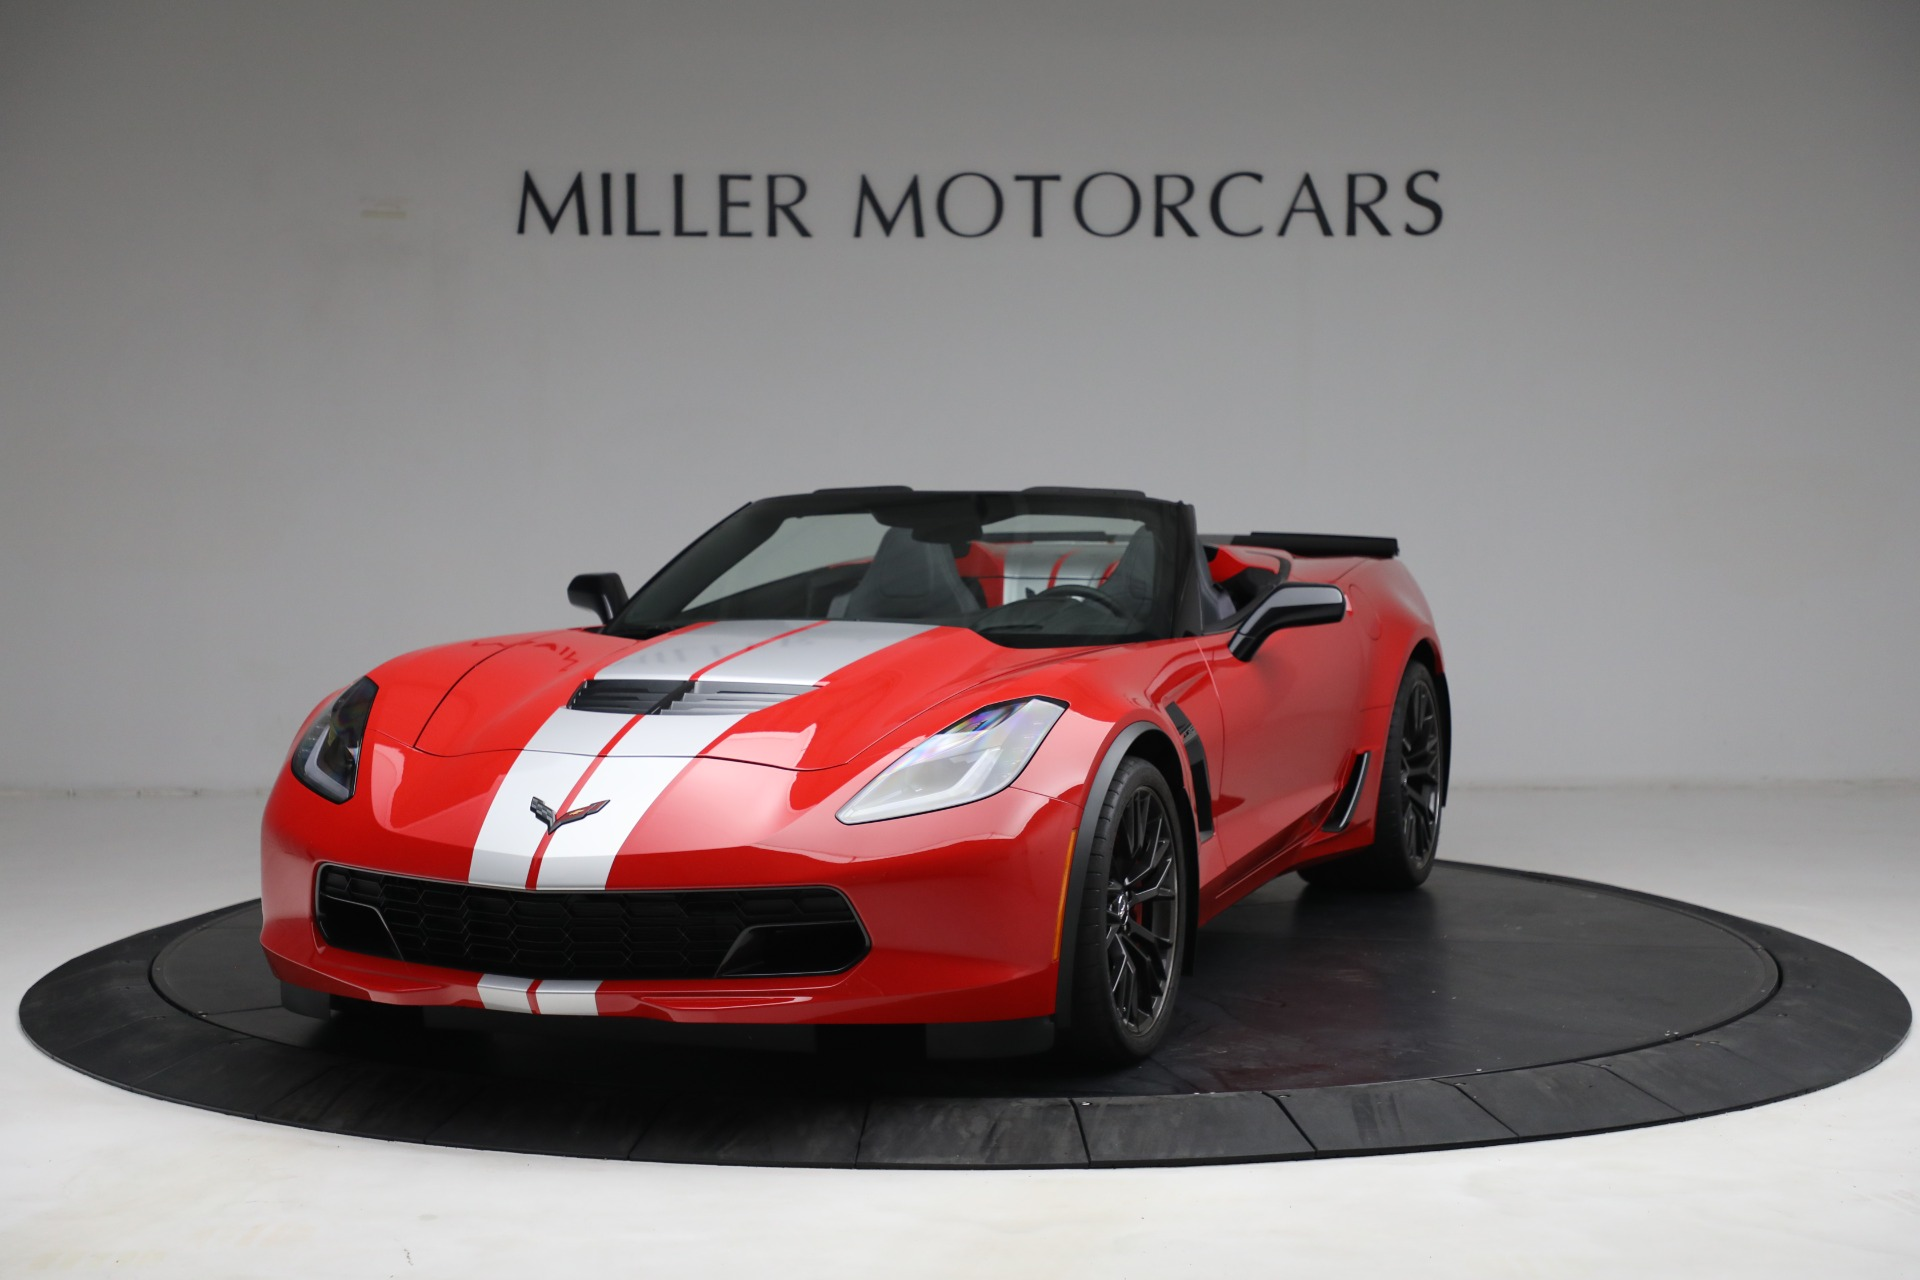 Used 2015 Chevrolet Corvette Z06 for sale $89,900 at Pagani of Greenwich in Greenwich CT 06830 1